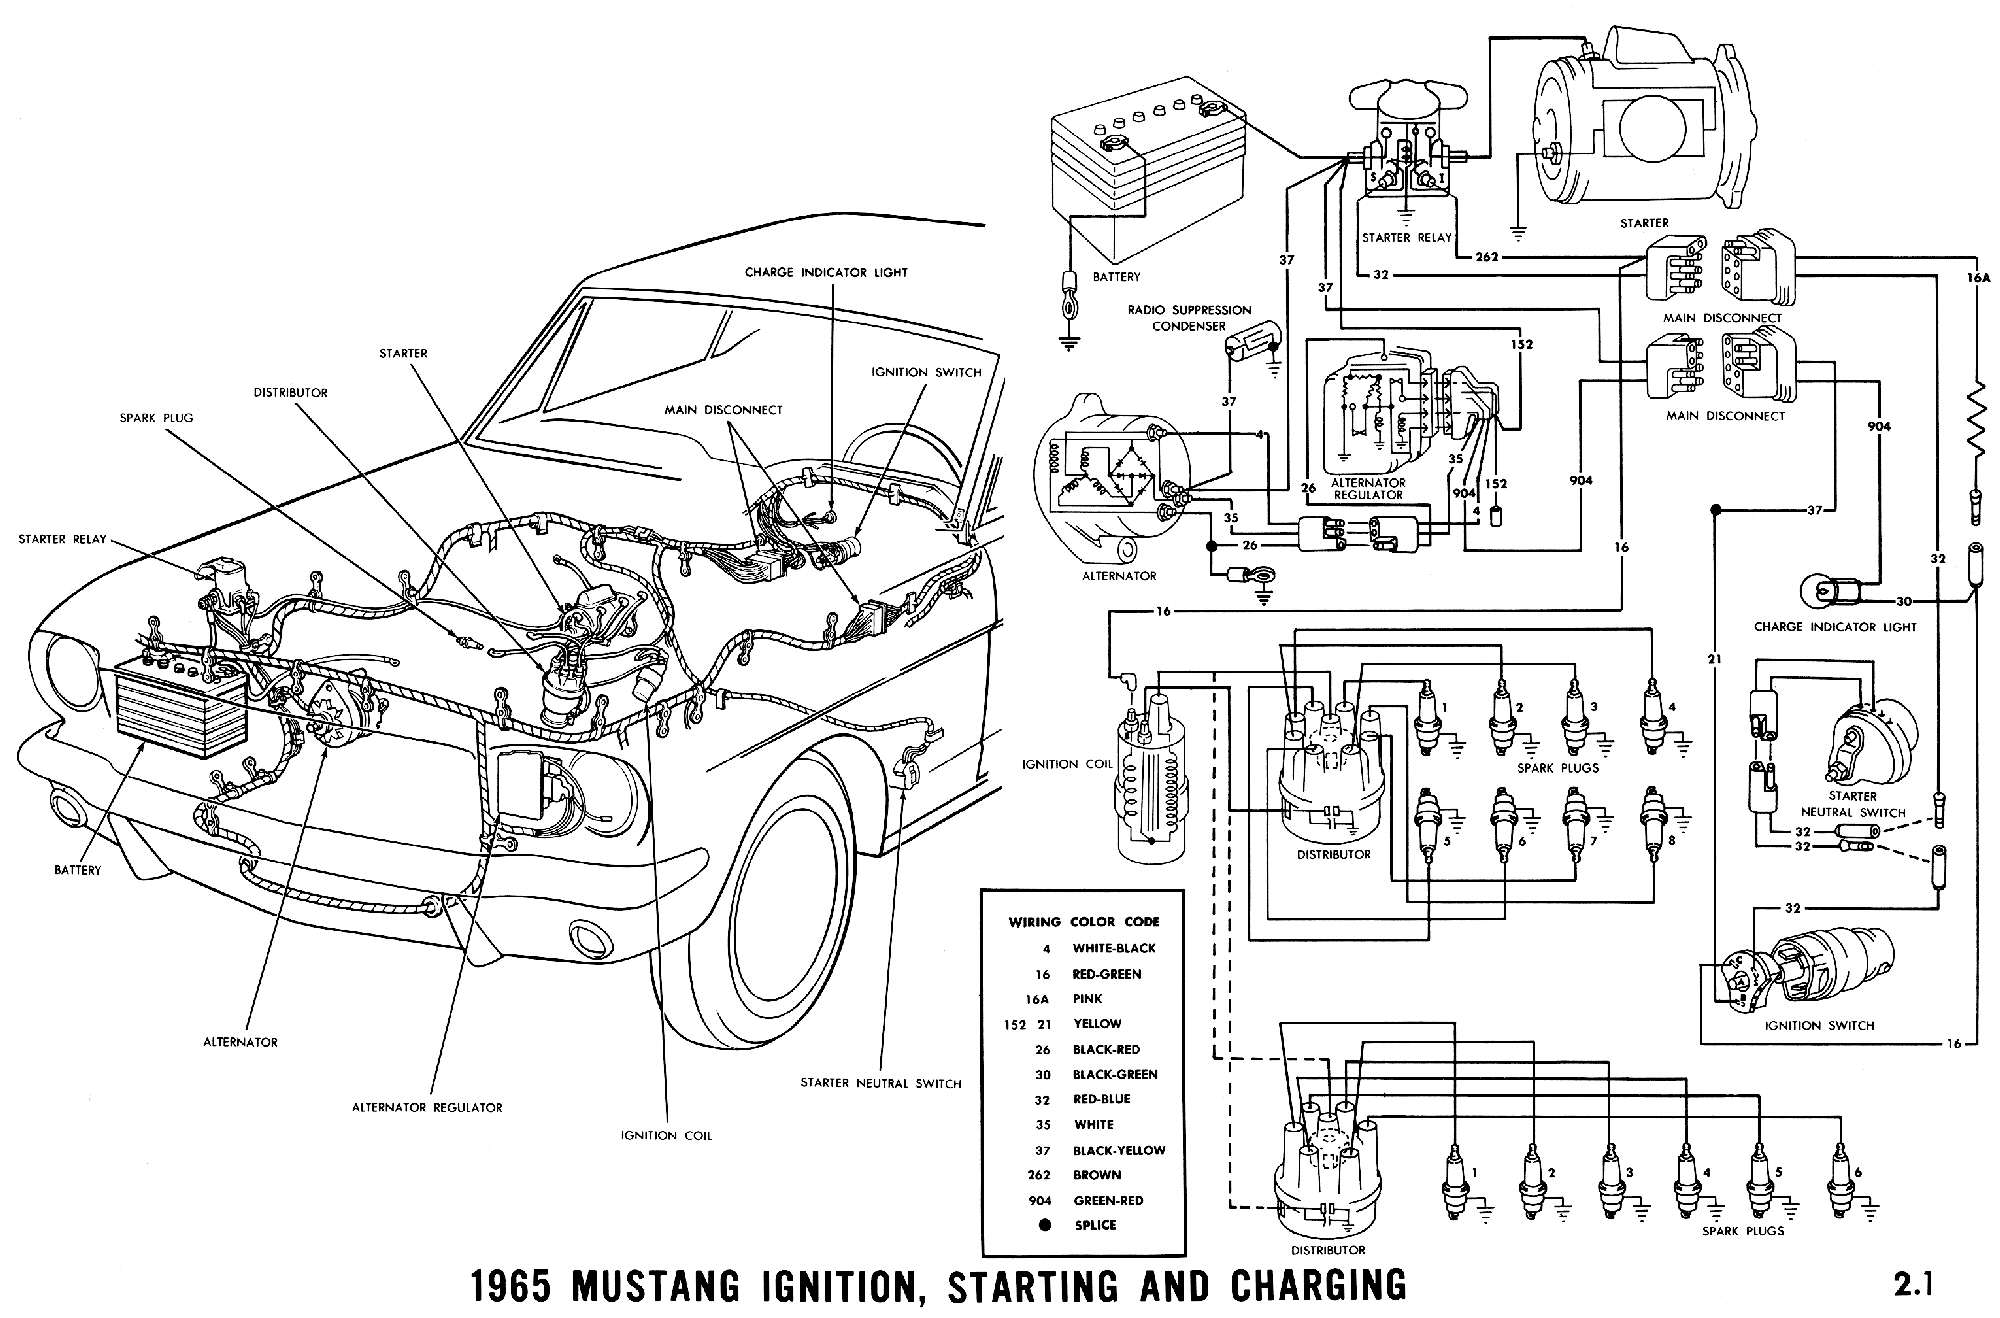 1964 ford ignition switch diagram 2005 focus headlight wiring falcon help needed muscle forums